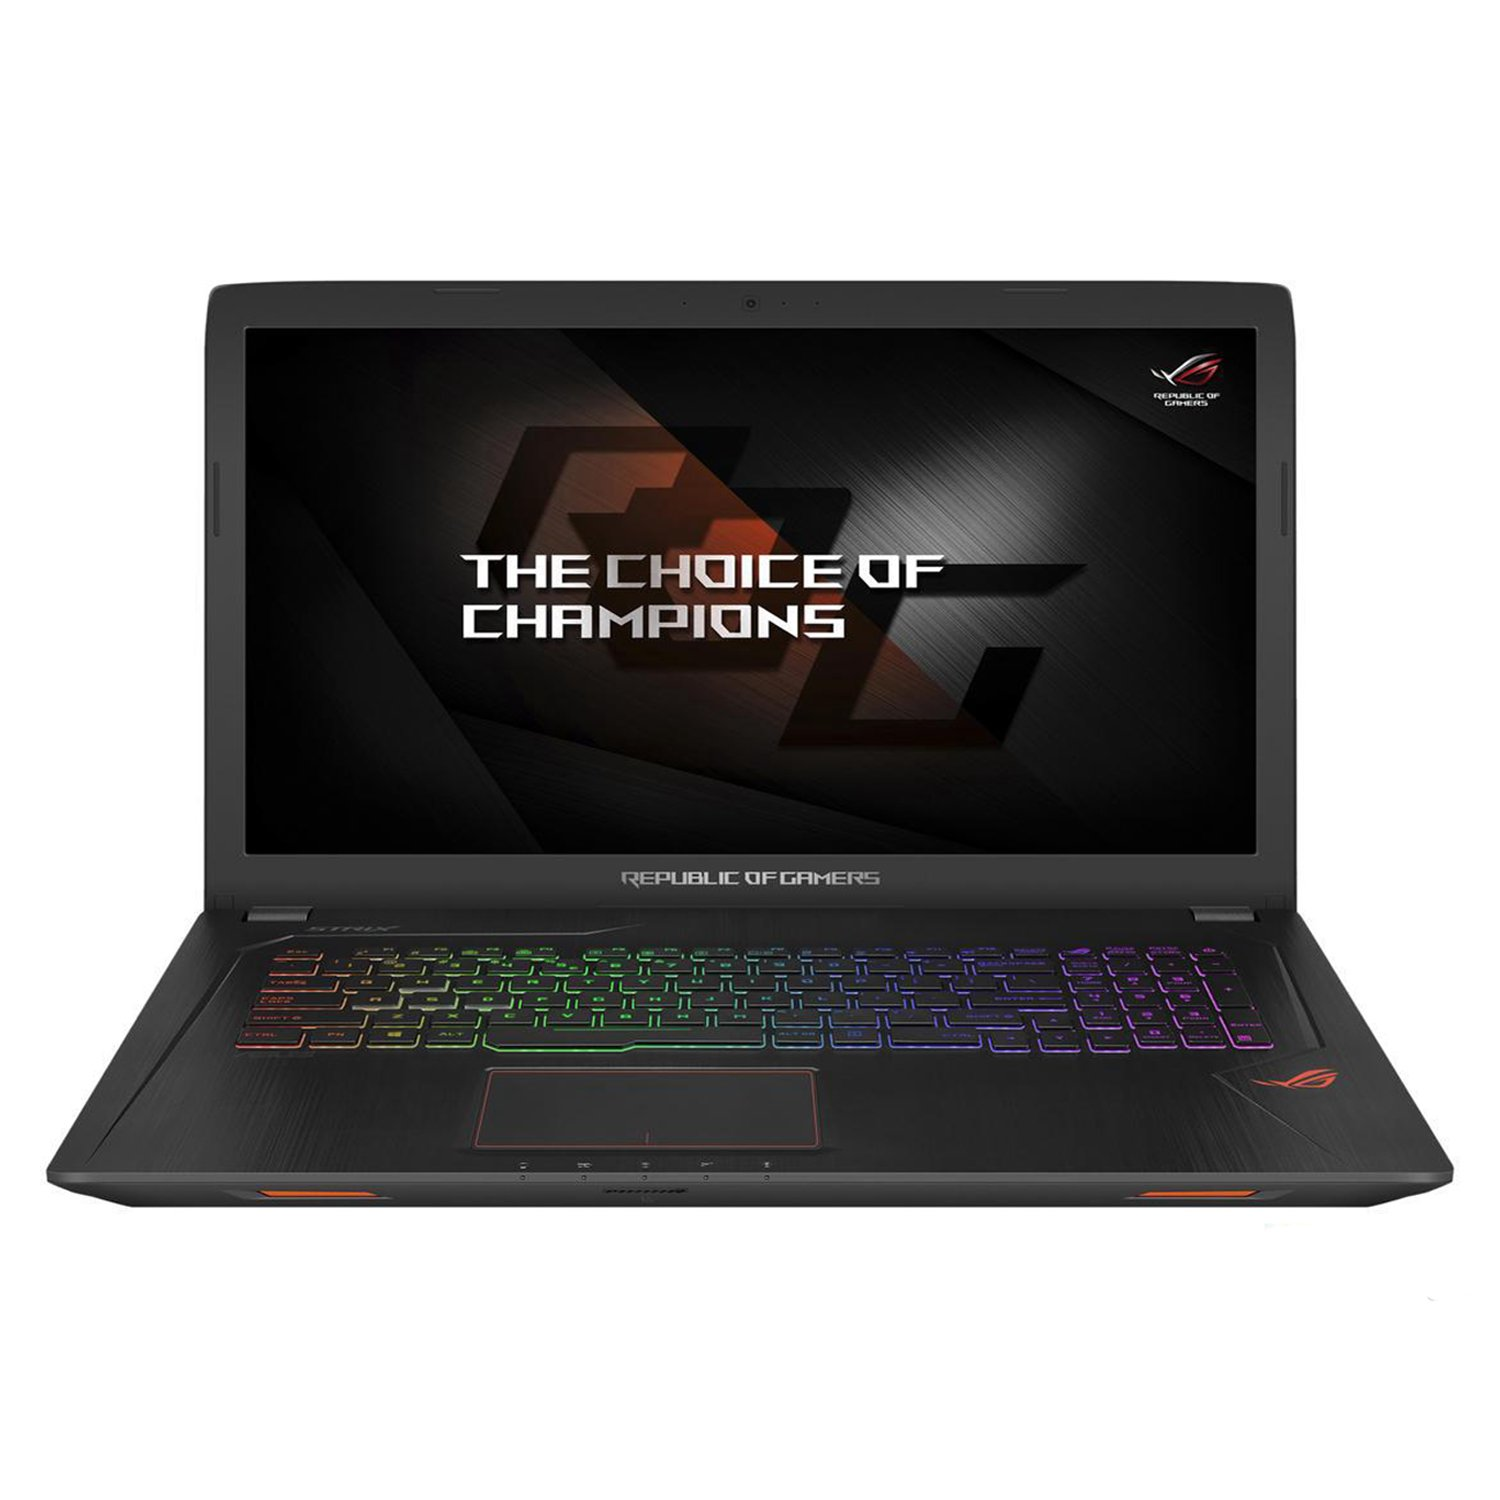 ASUS ROG GL753VE Gaming Laptop Black Friday Deals